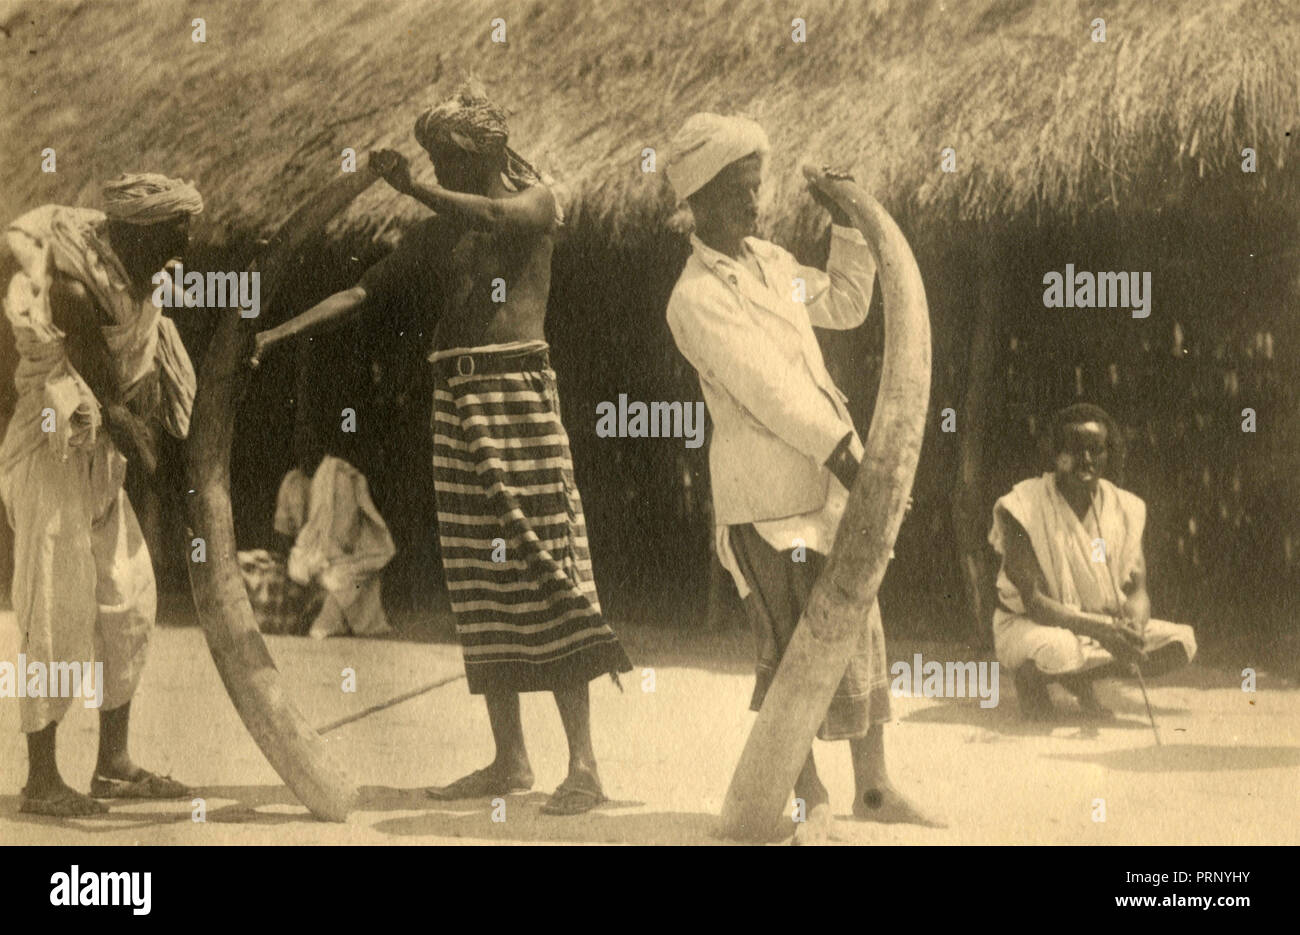 Ivory merchants, Gelito 1933 - Stock Image